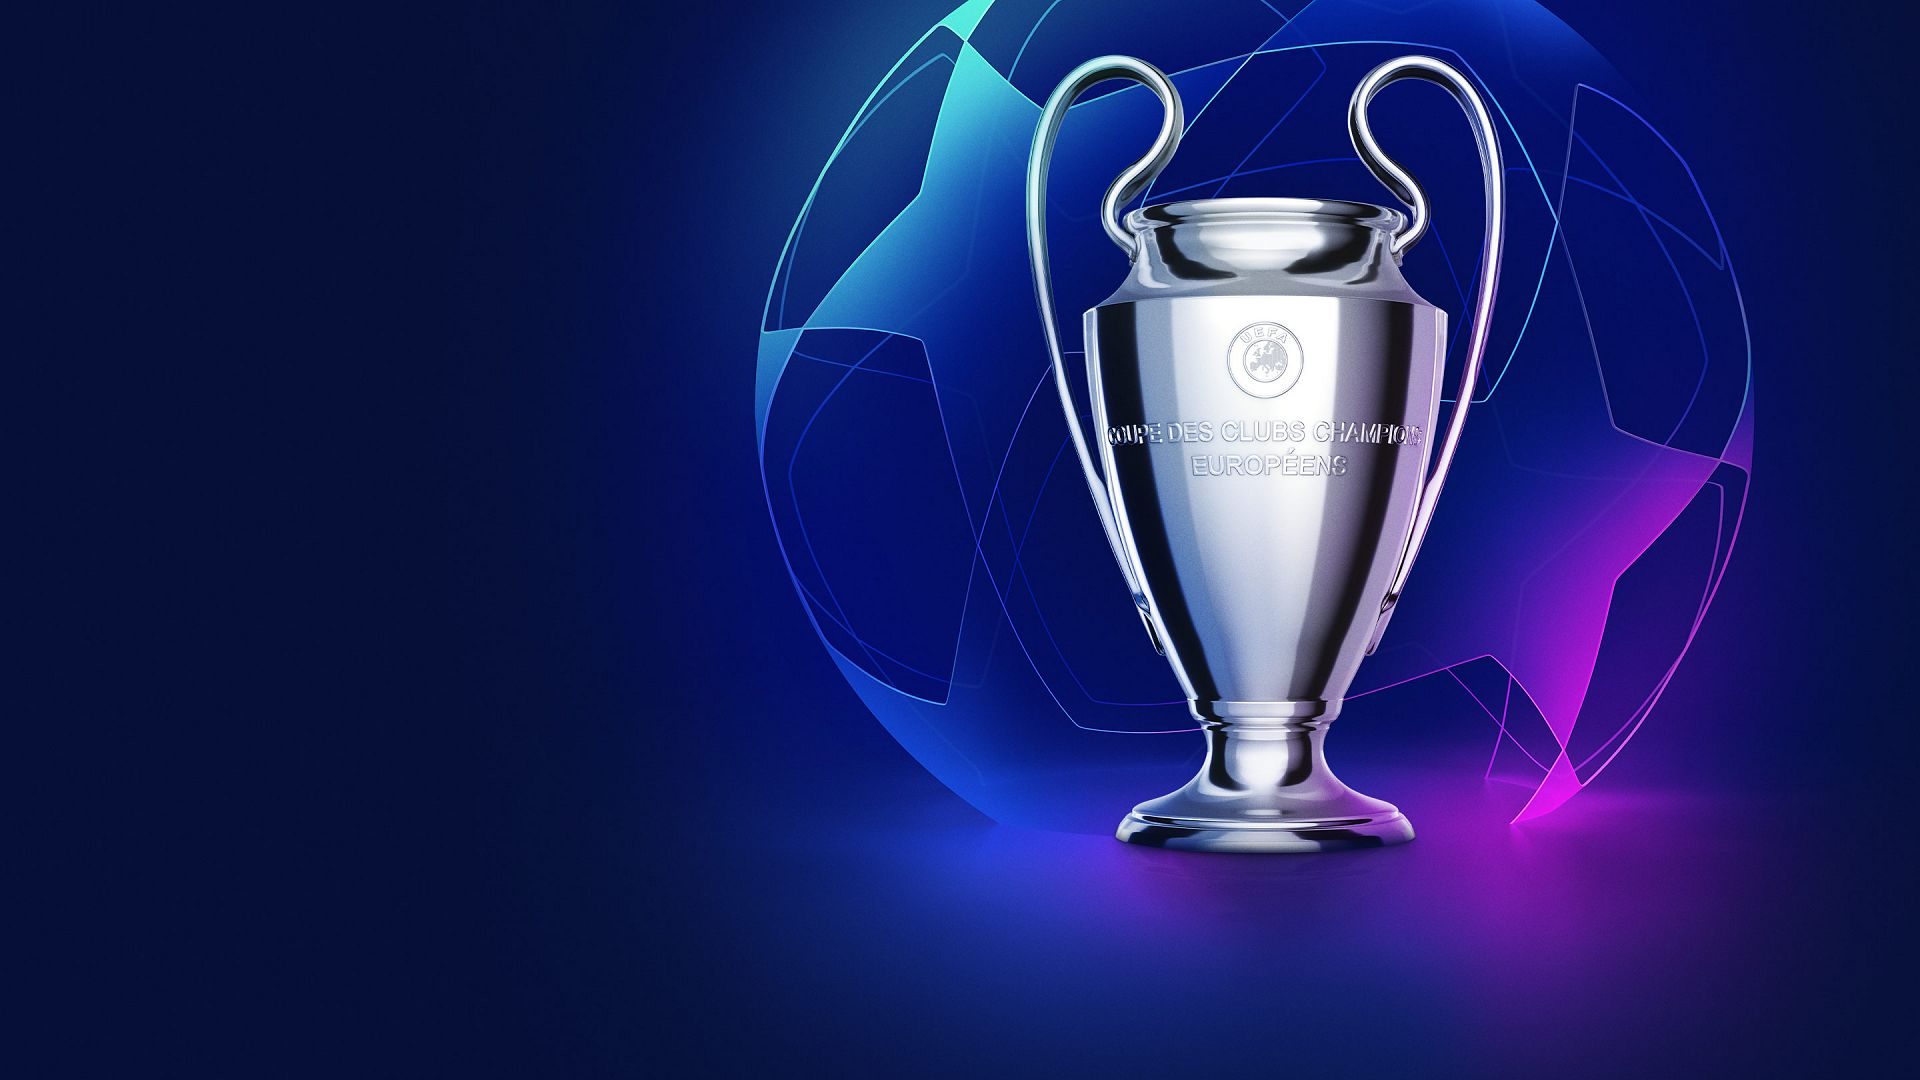 9+ Uefa Champions League 2020-21 Wallpaper